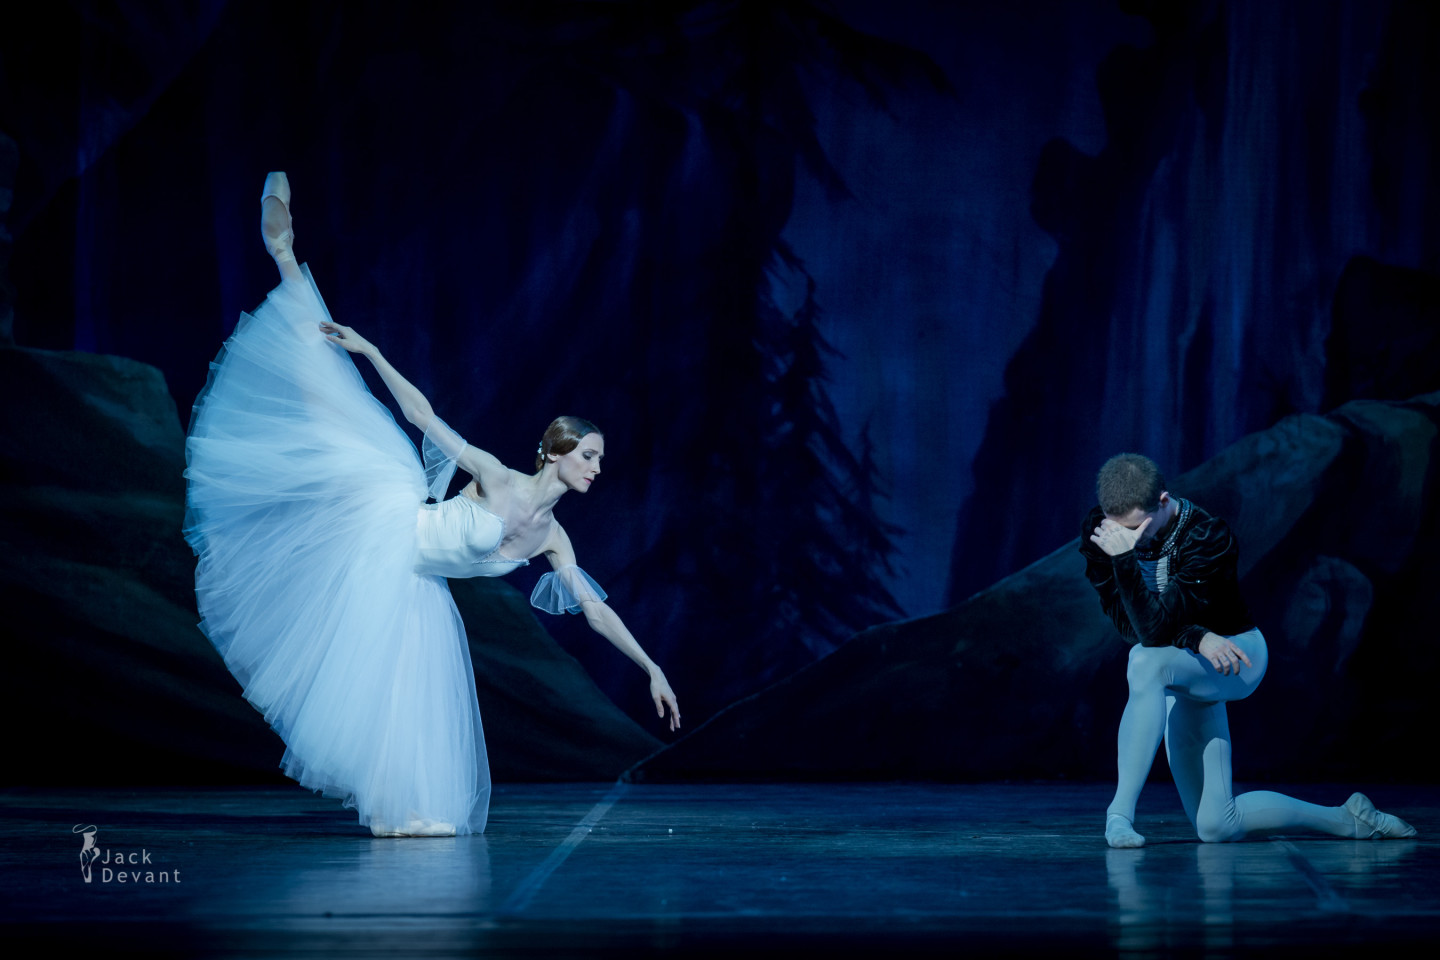 Svetlana Zakharova and Sergei Polunin in Giselle 2nd act